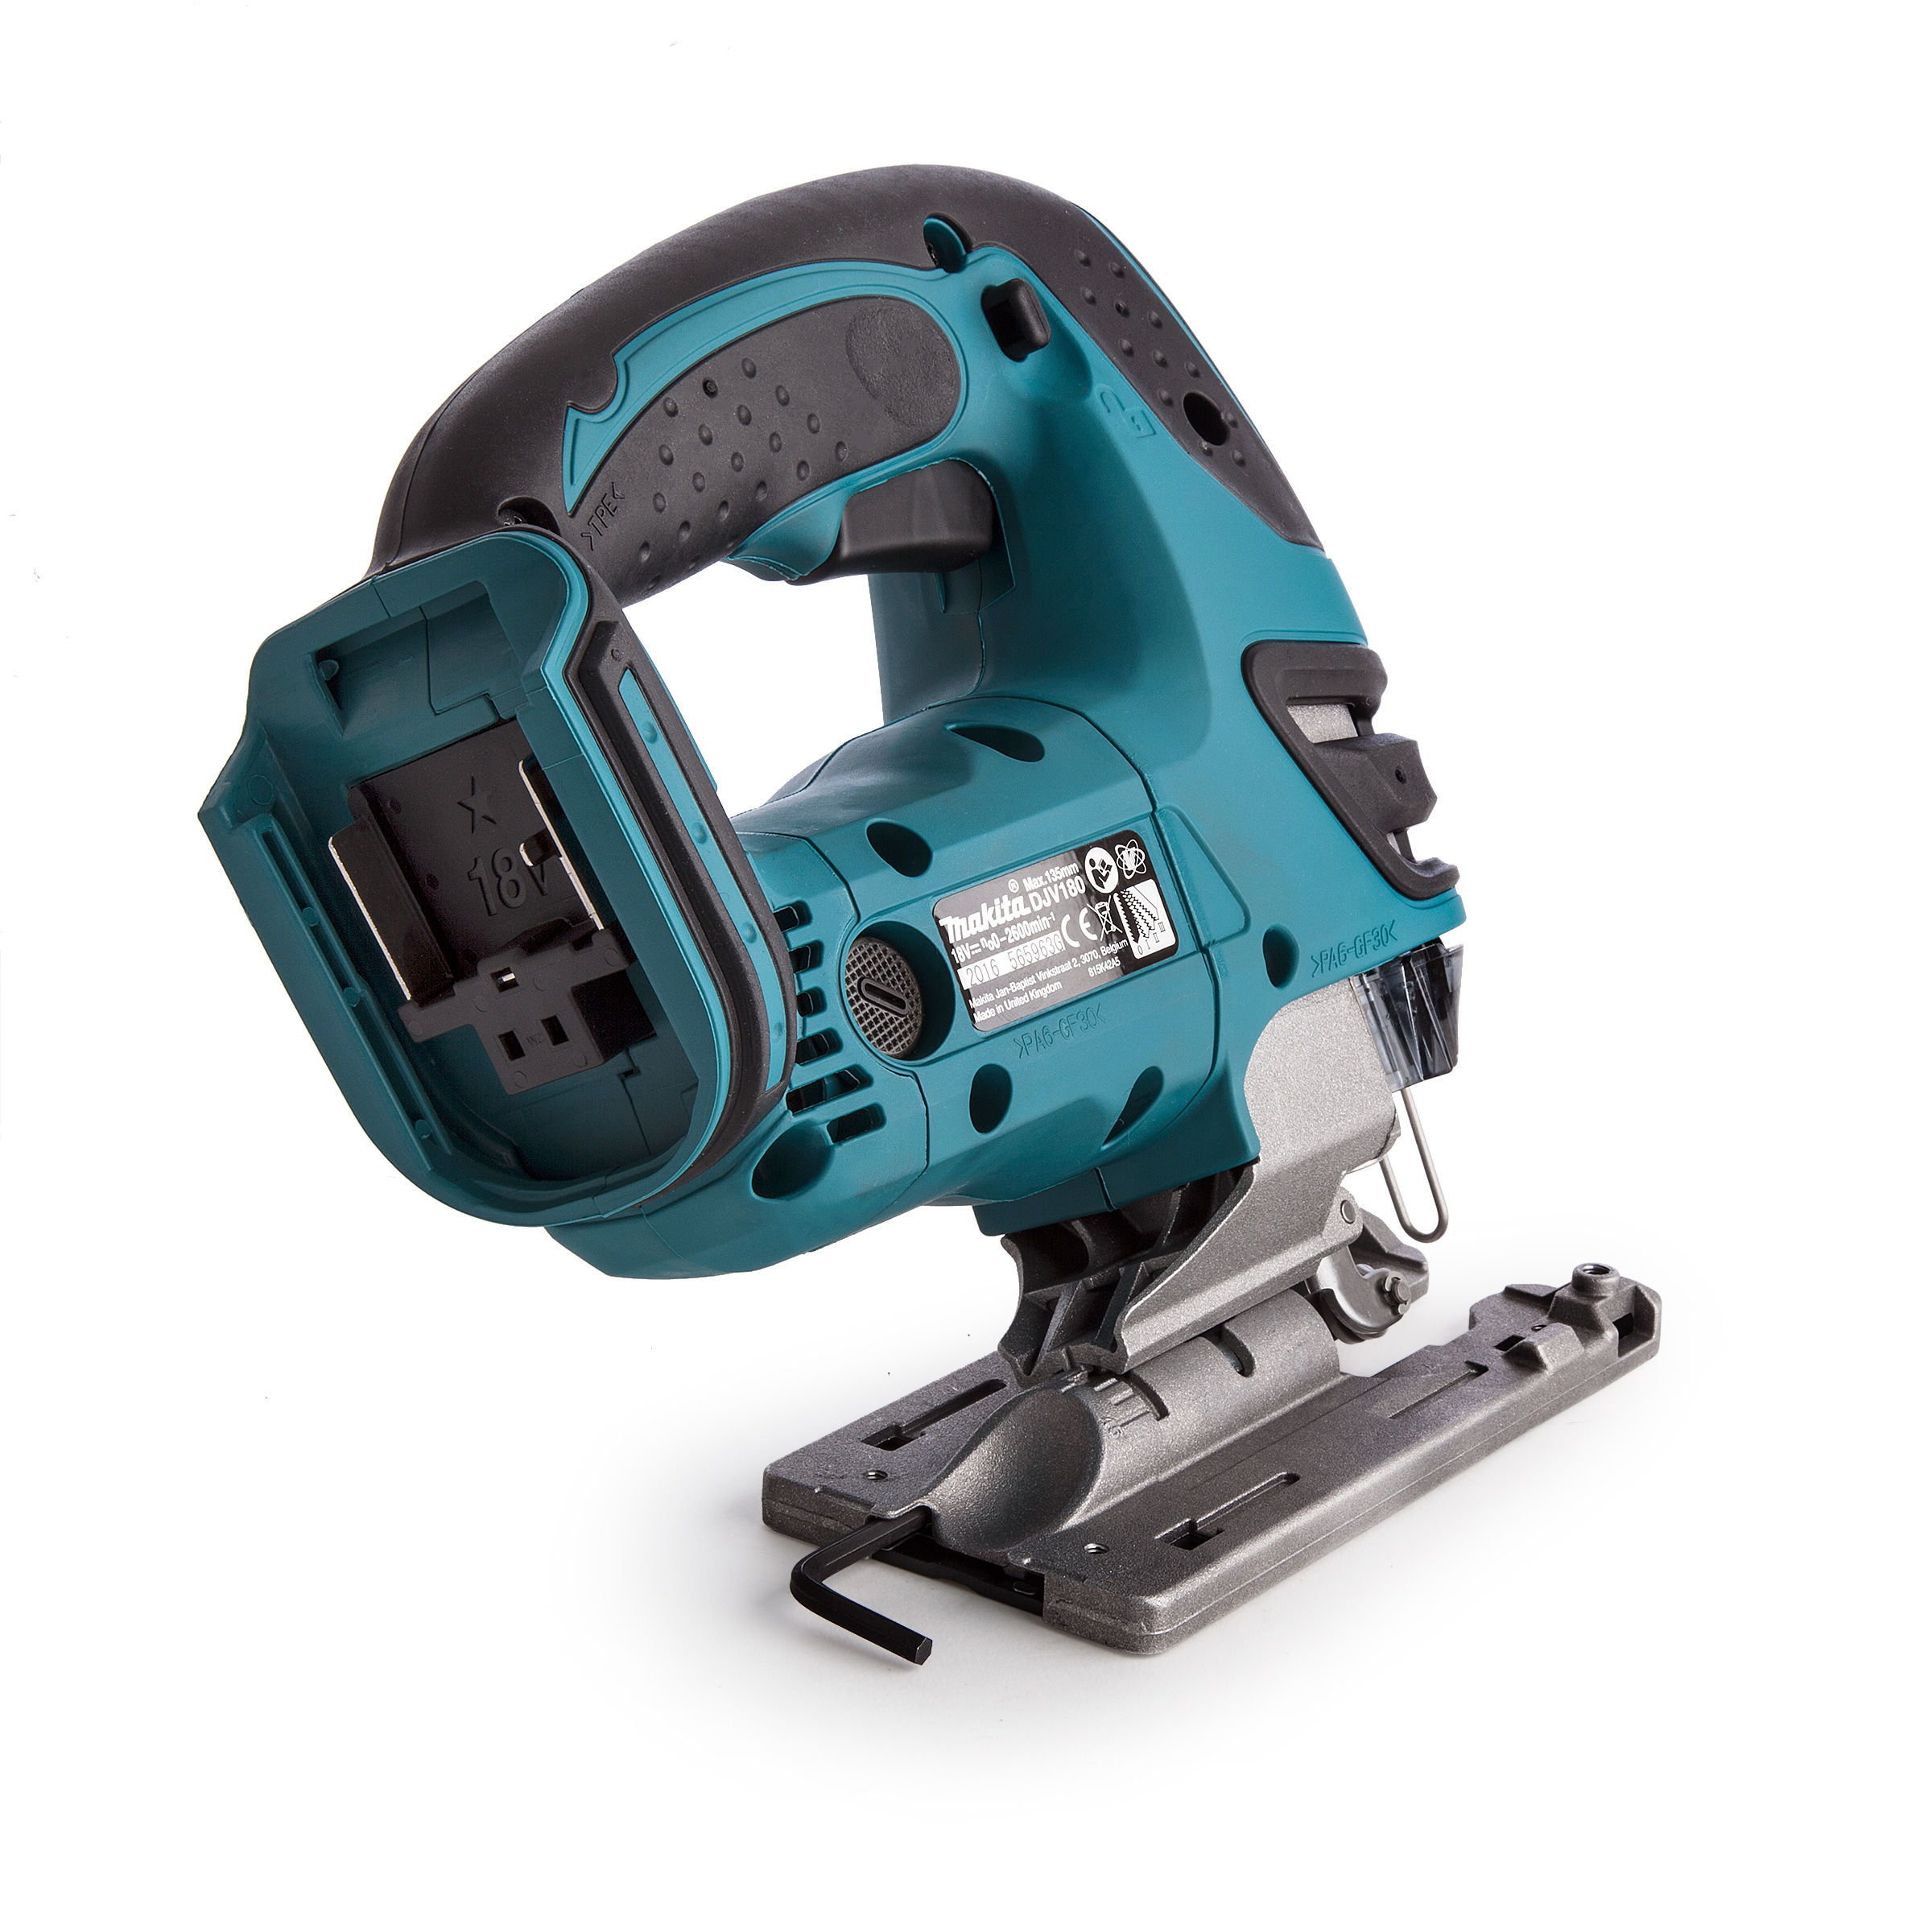 Toolstop Makita Djv180z 18v Cordless Jigsaw Body Only